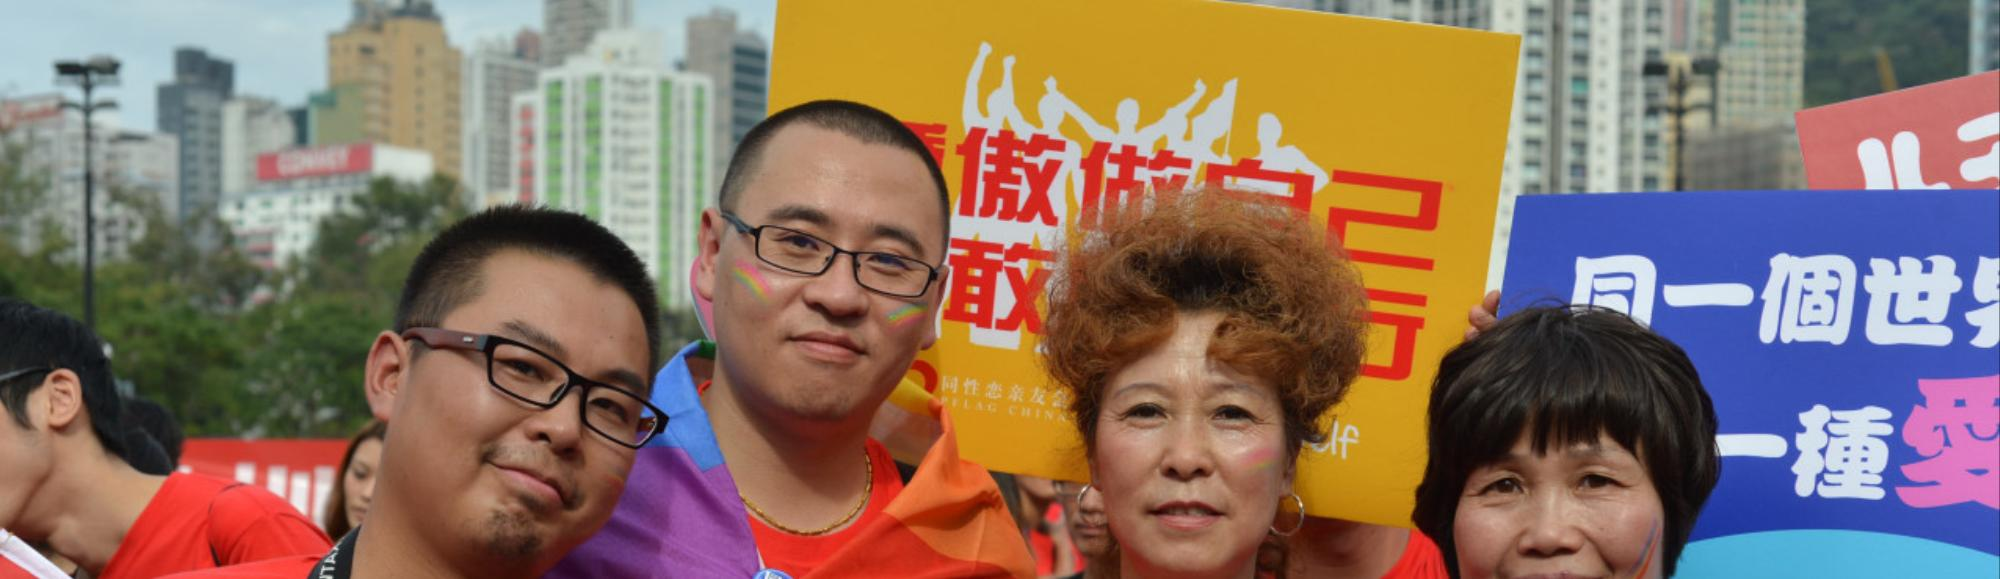 China's Attitude Toward Homosexuality Is Beginning to Shift, with Parents Leading the Way